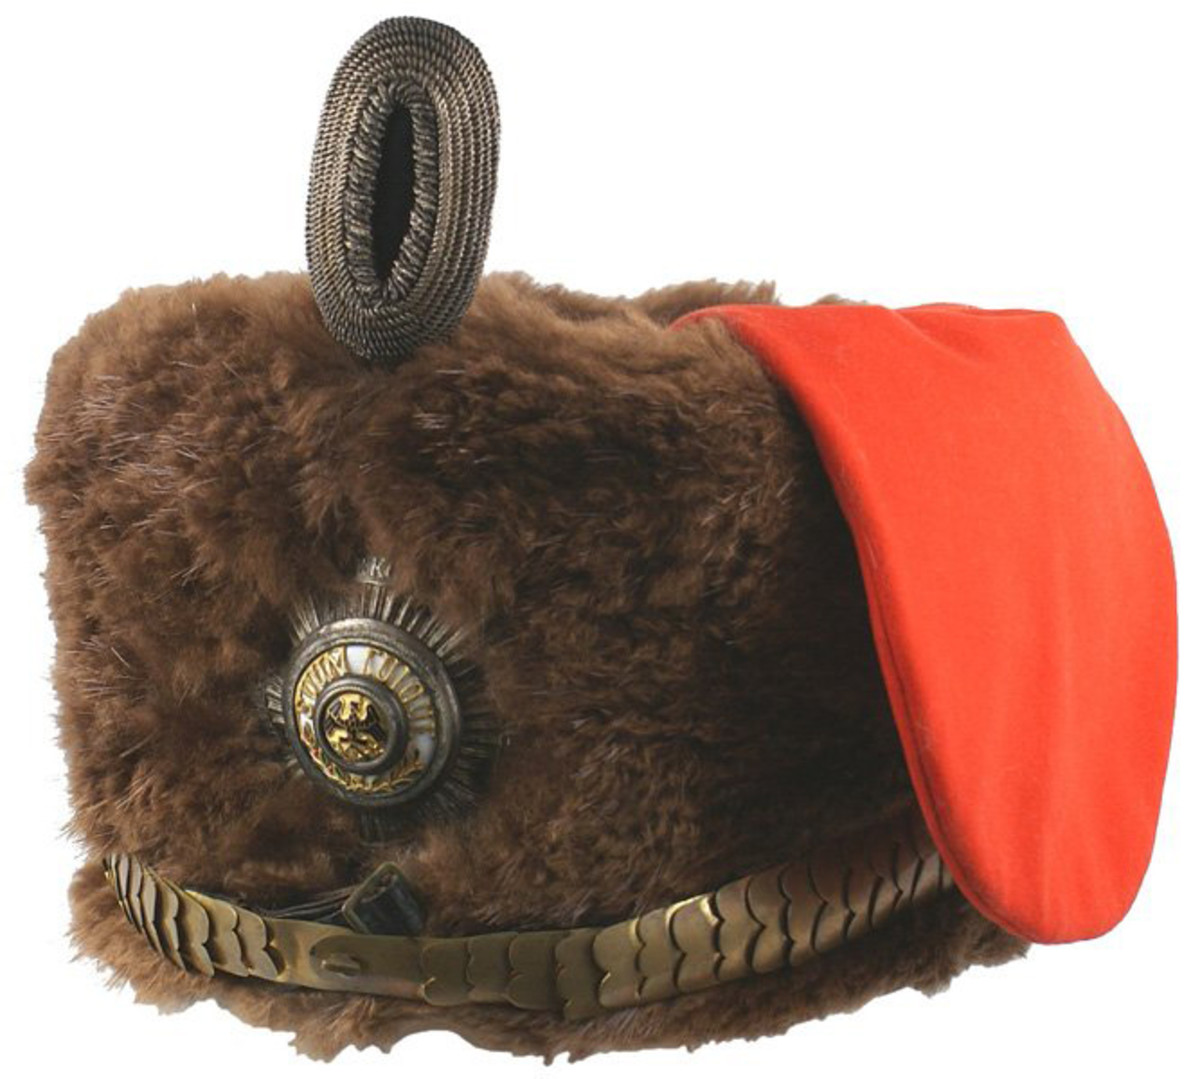 Personal Garde Hussar busby (fur-covered helmet) once owned by Germany's Kaiser Wilhelm ($16,500).